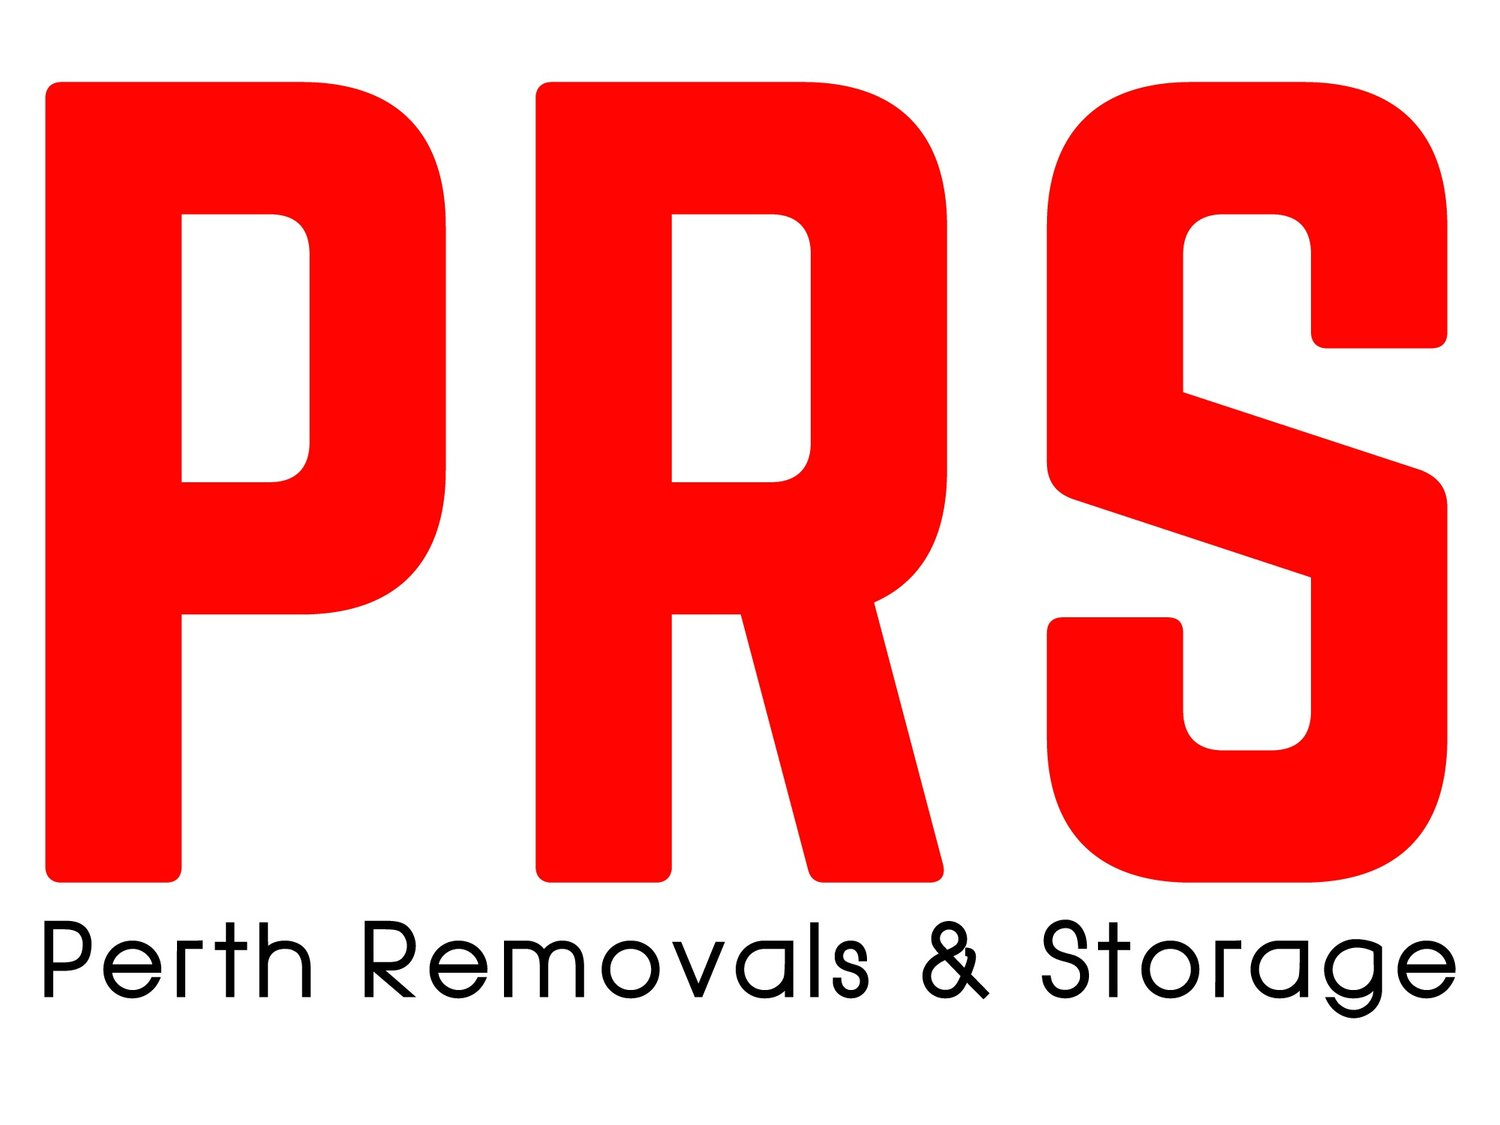 Perth Removals & Storage